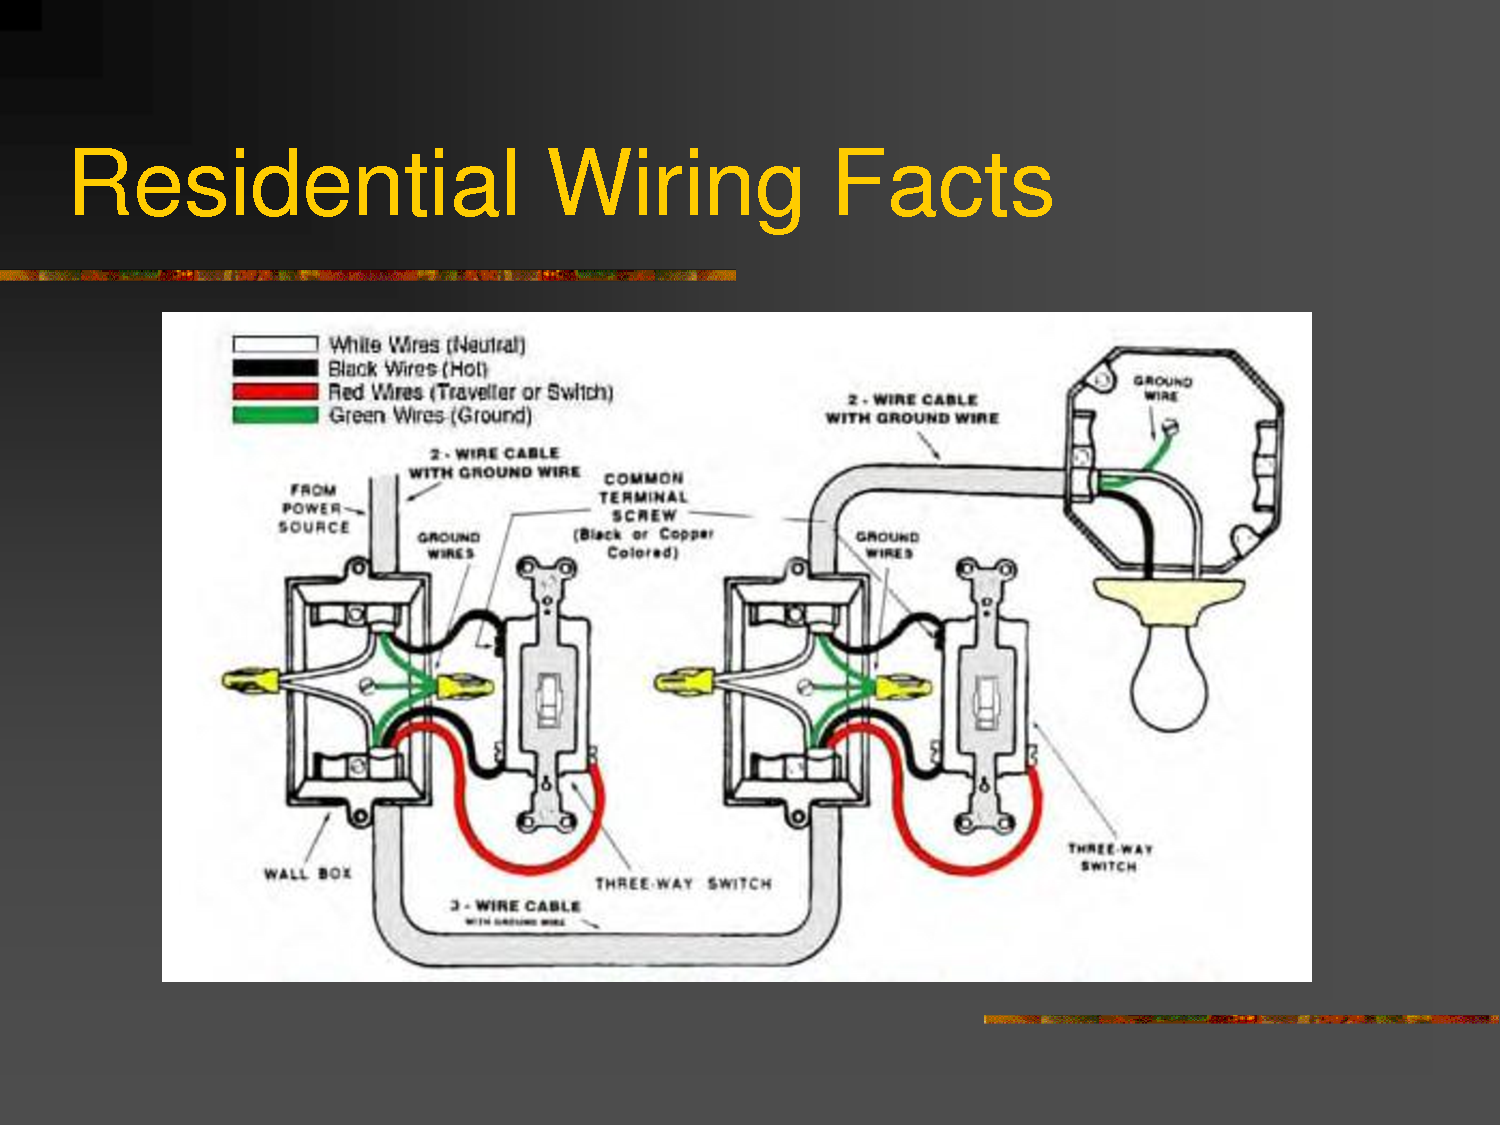 4 Best Images Of Residential Wiring Diagrams House Electrical Cycle Electric